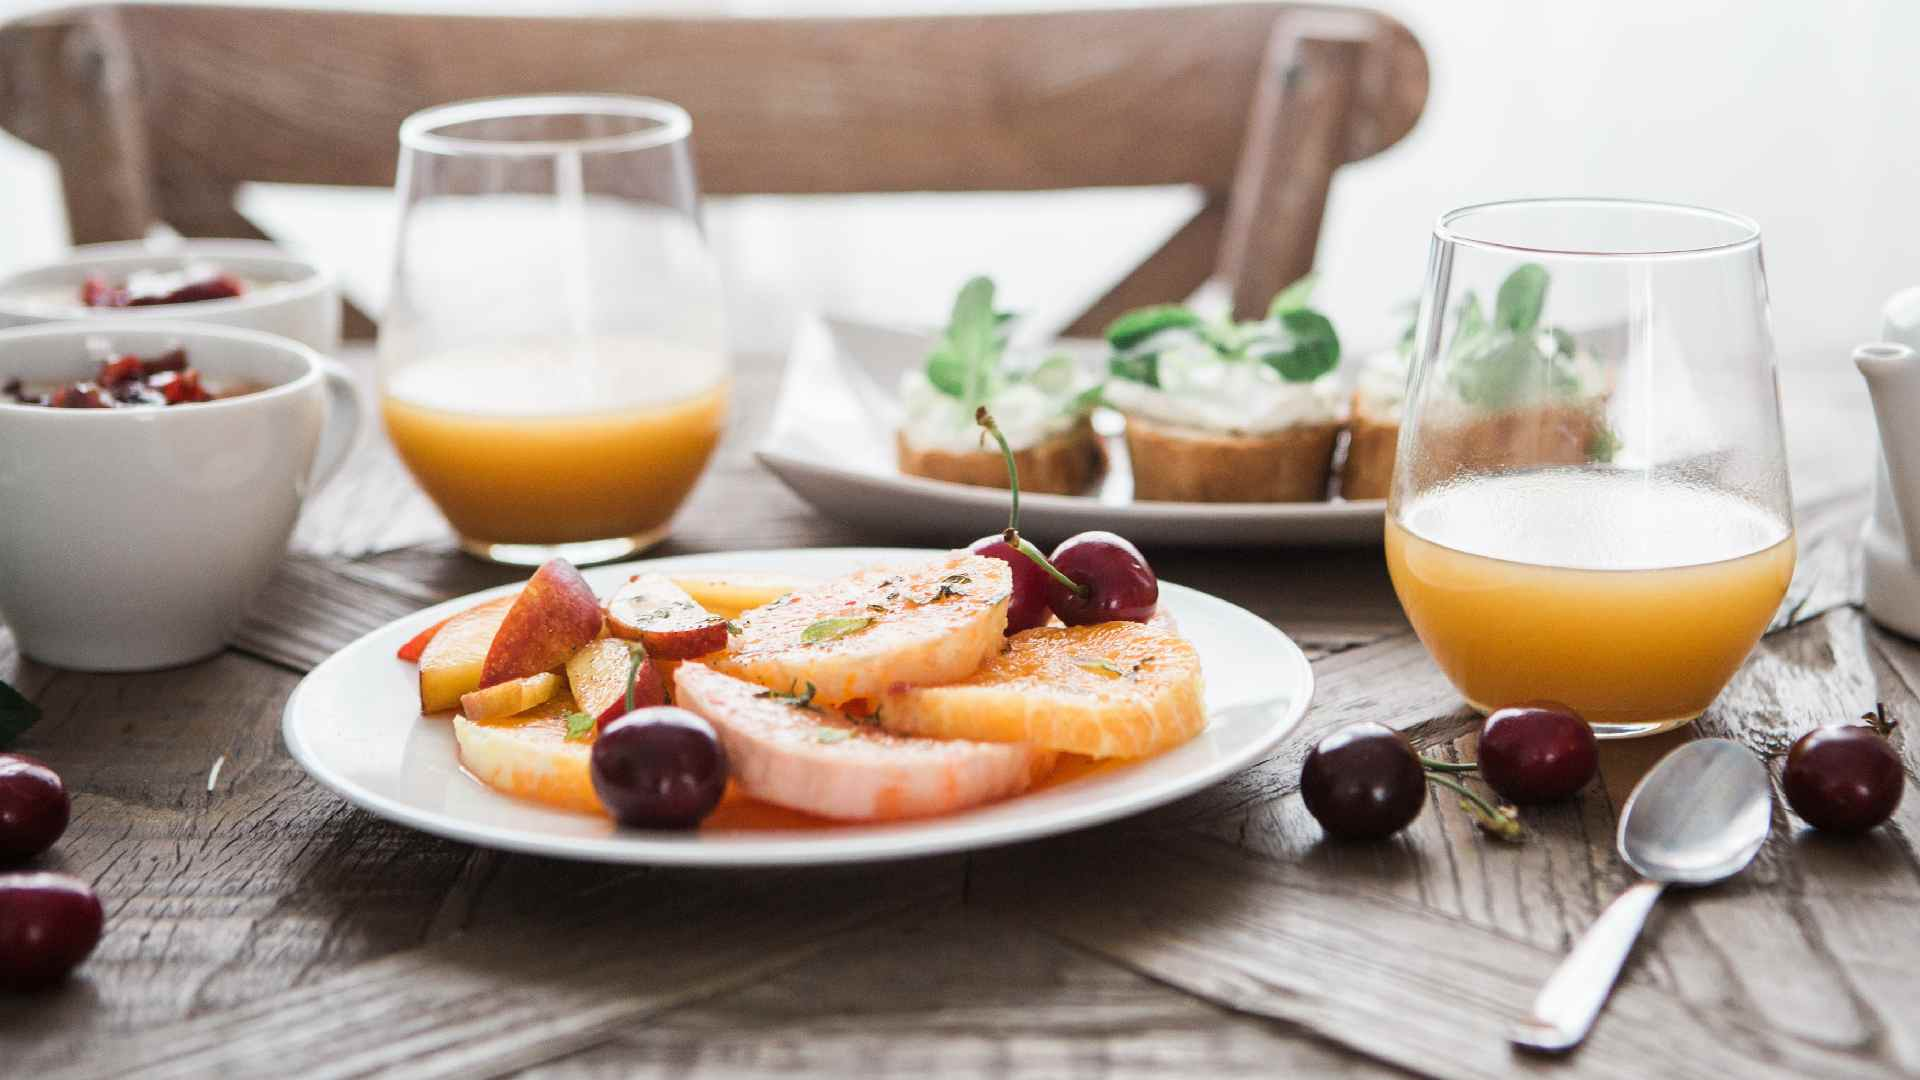 How to Choose an Aperitif and Digestive